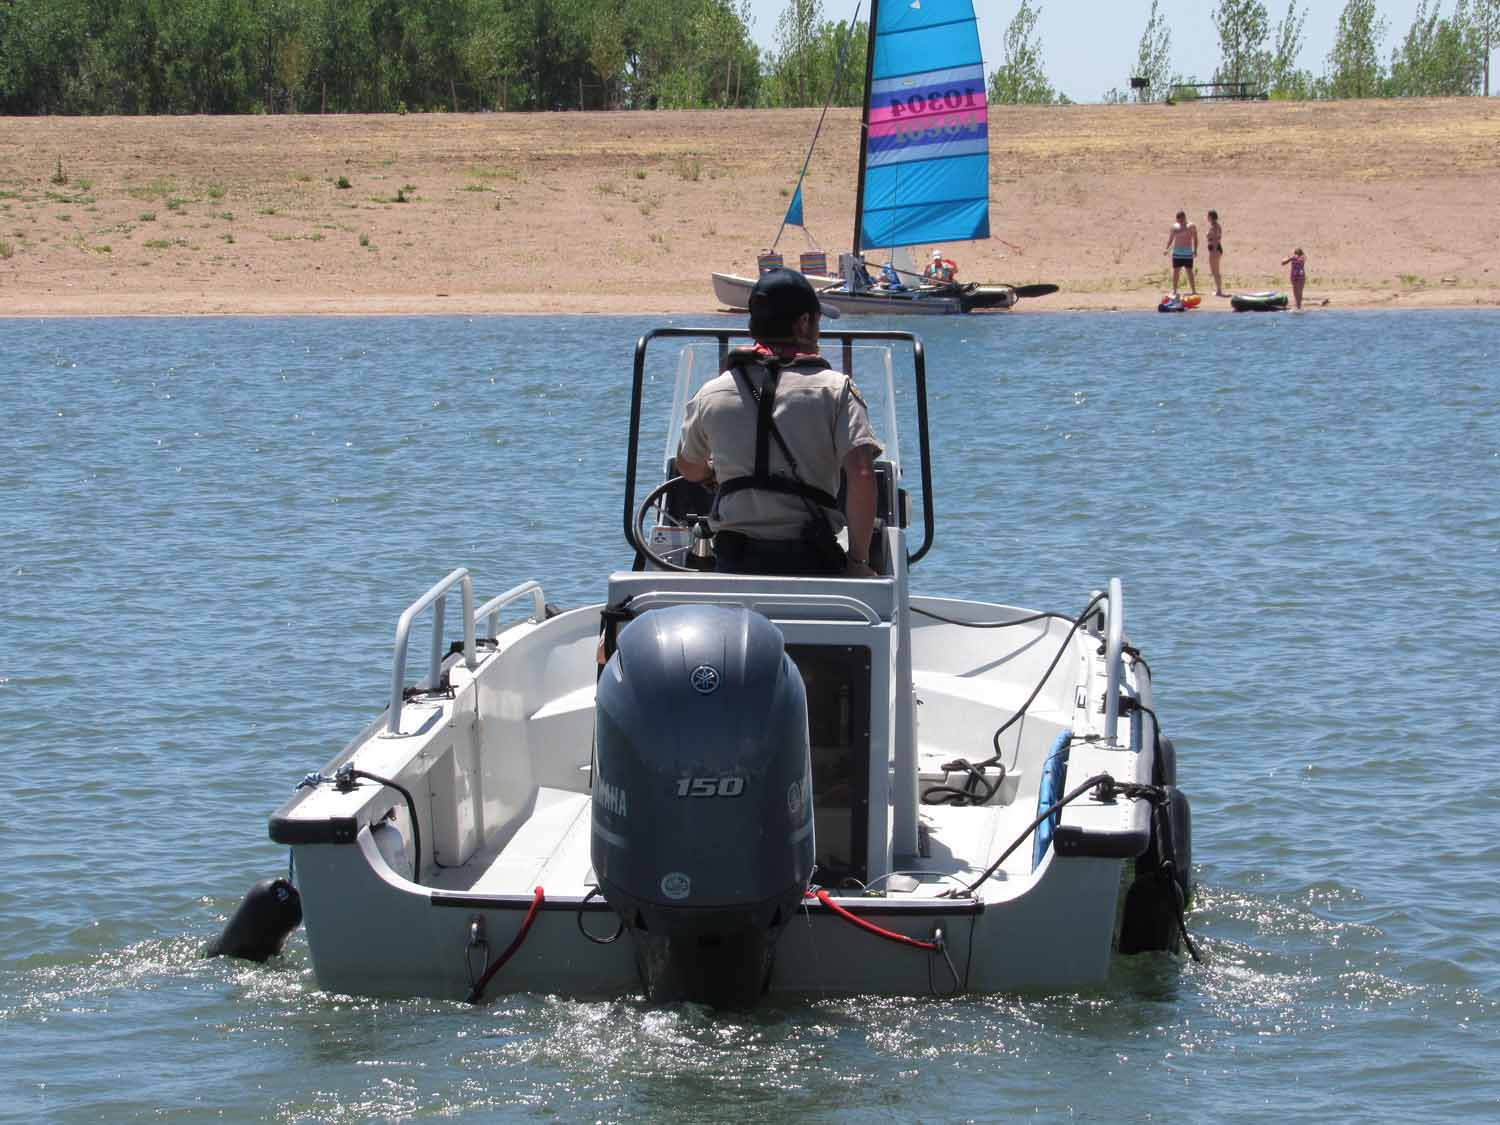 A Colorado Parks and Wildlife officer heads out on patrol at Chatfield Reservoir. A $171 million redesign at the popular lake is now complete, providing more water storage for Front Range cities and farmers. But environmental concerns remain about the project's impact on hundreds of bird species. June 8, 2020 Credit: Jerd Smith